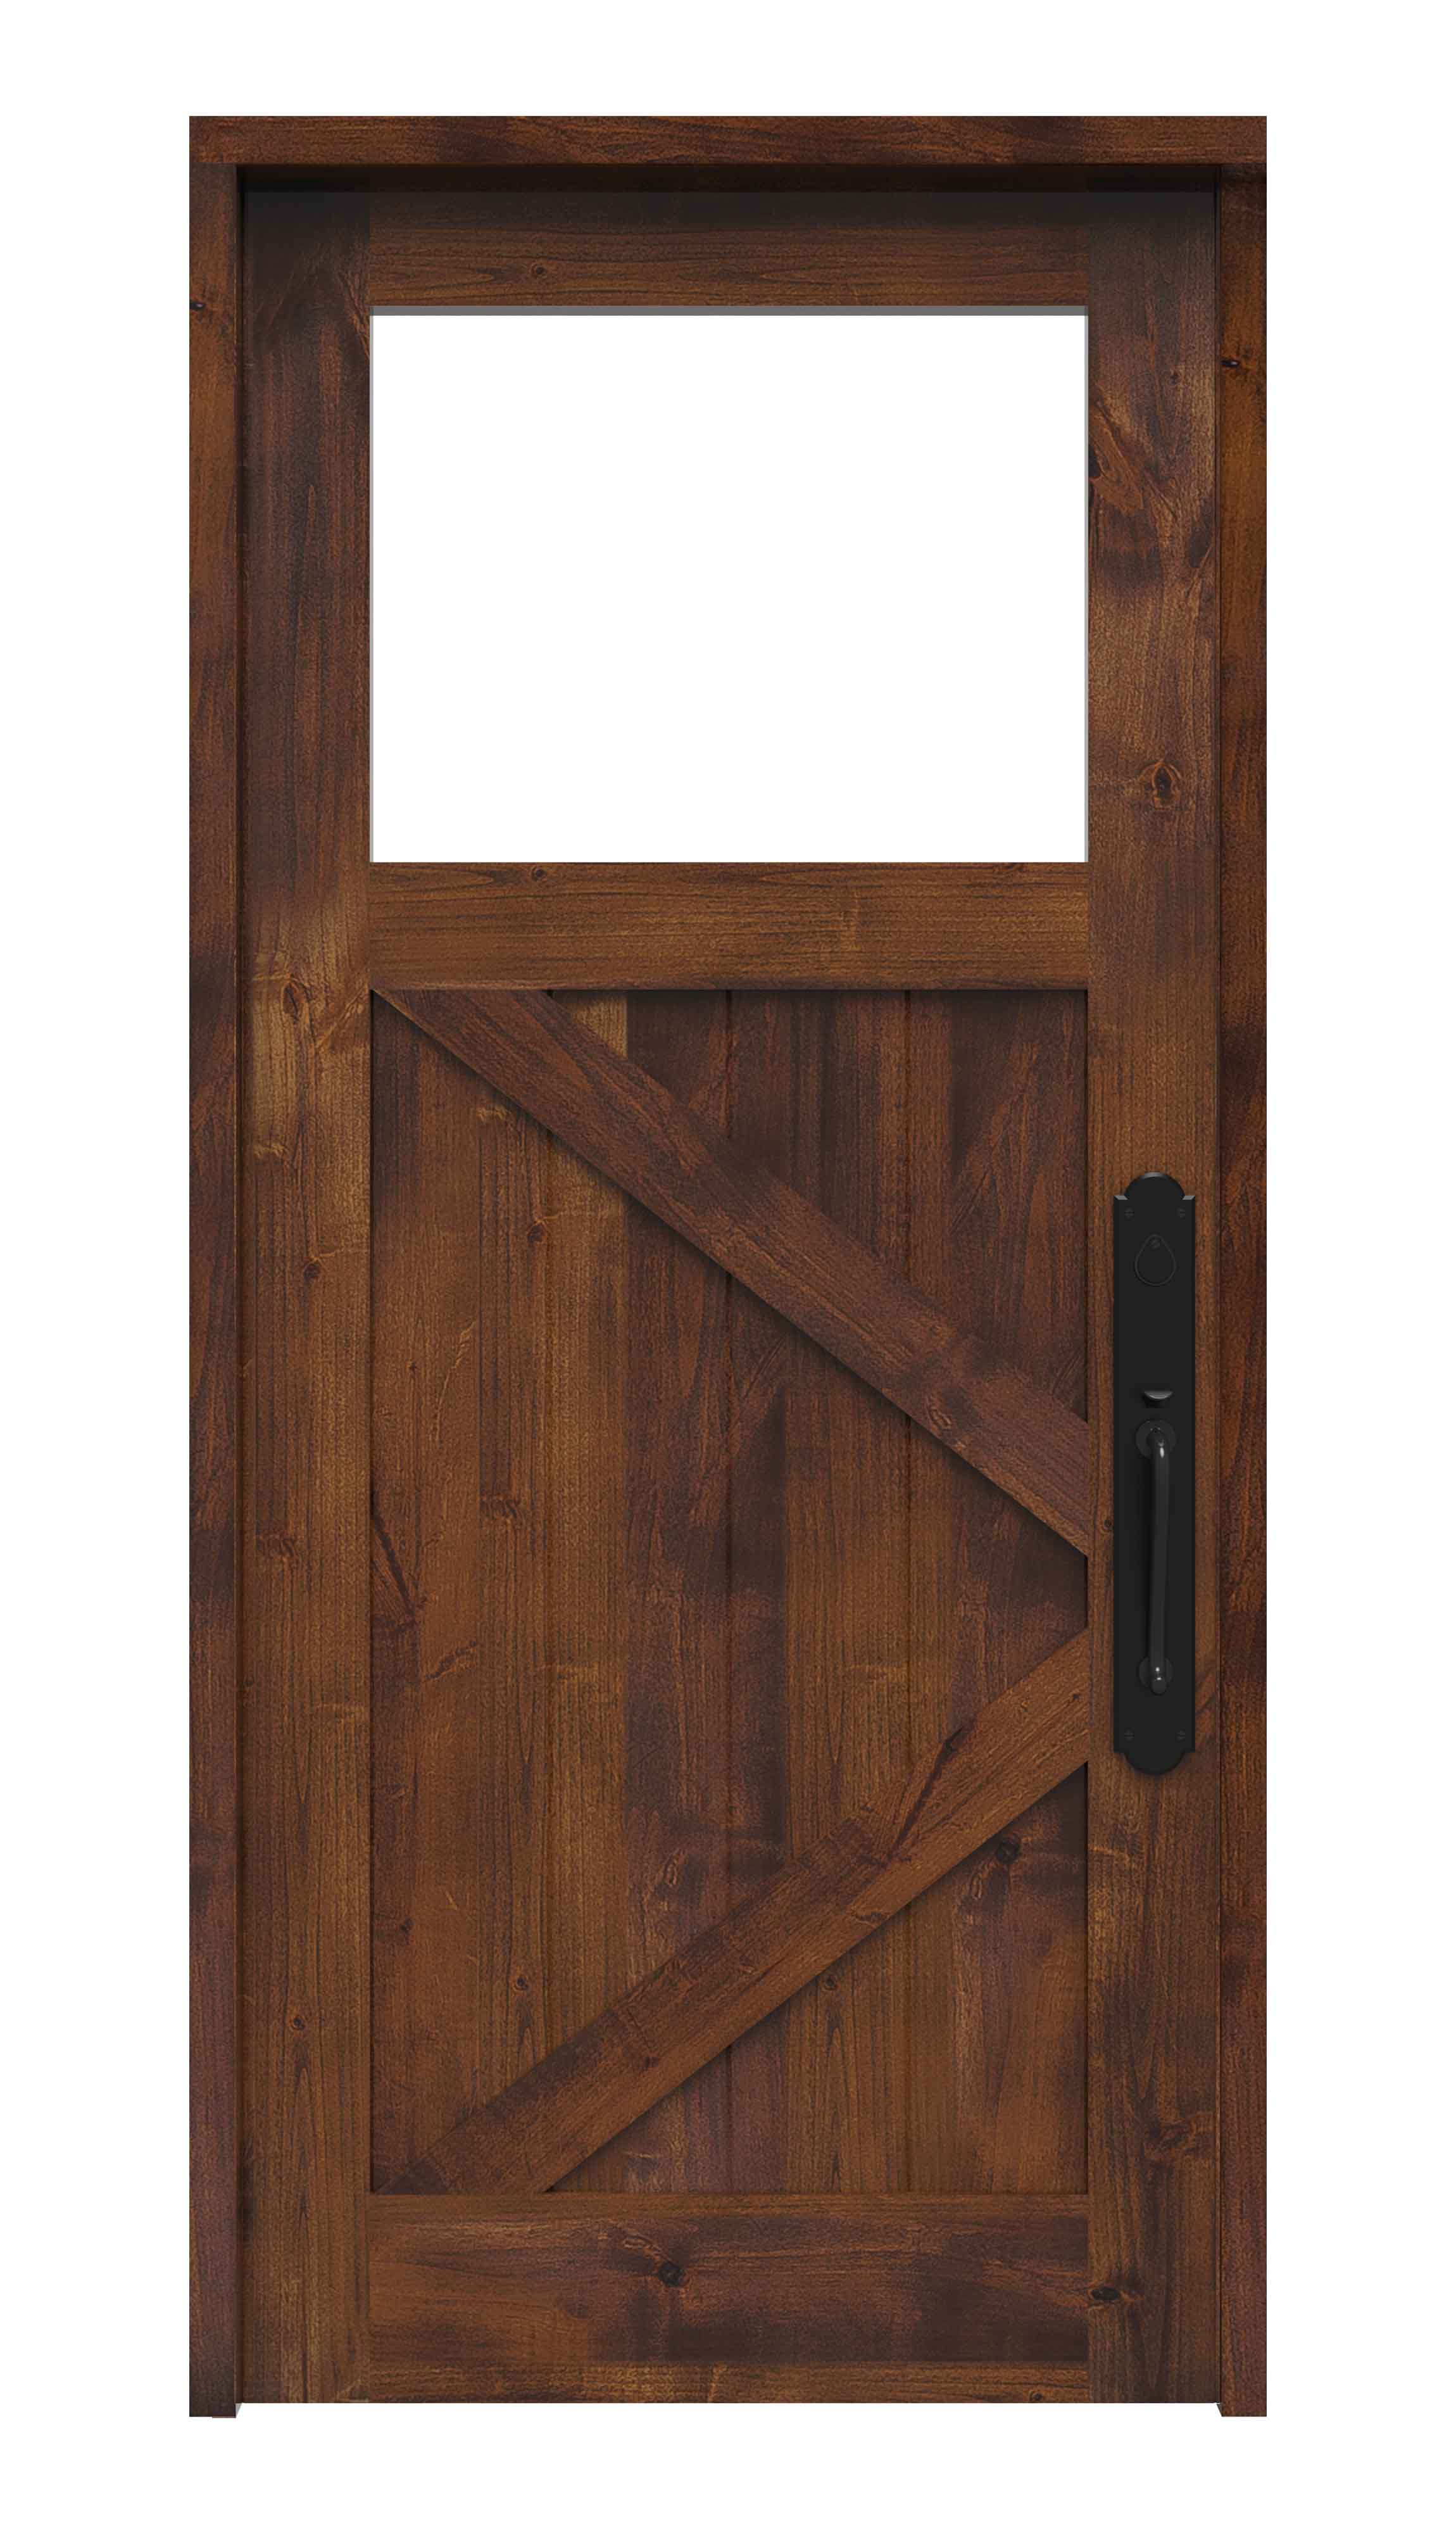 Pocket French Doors K Bar Ranch Style Front Entry Door With Window | Rustica